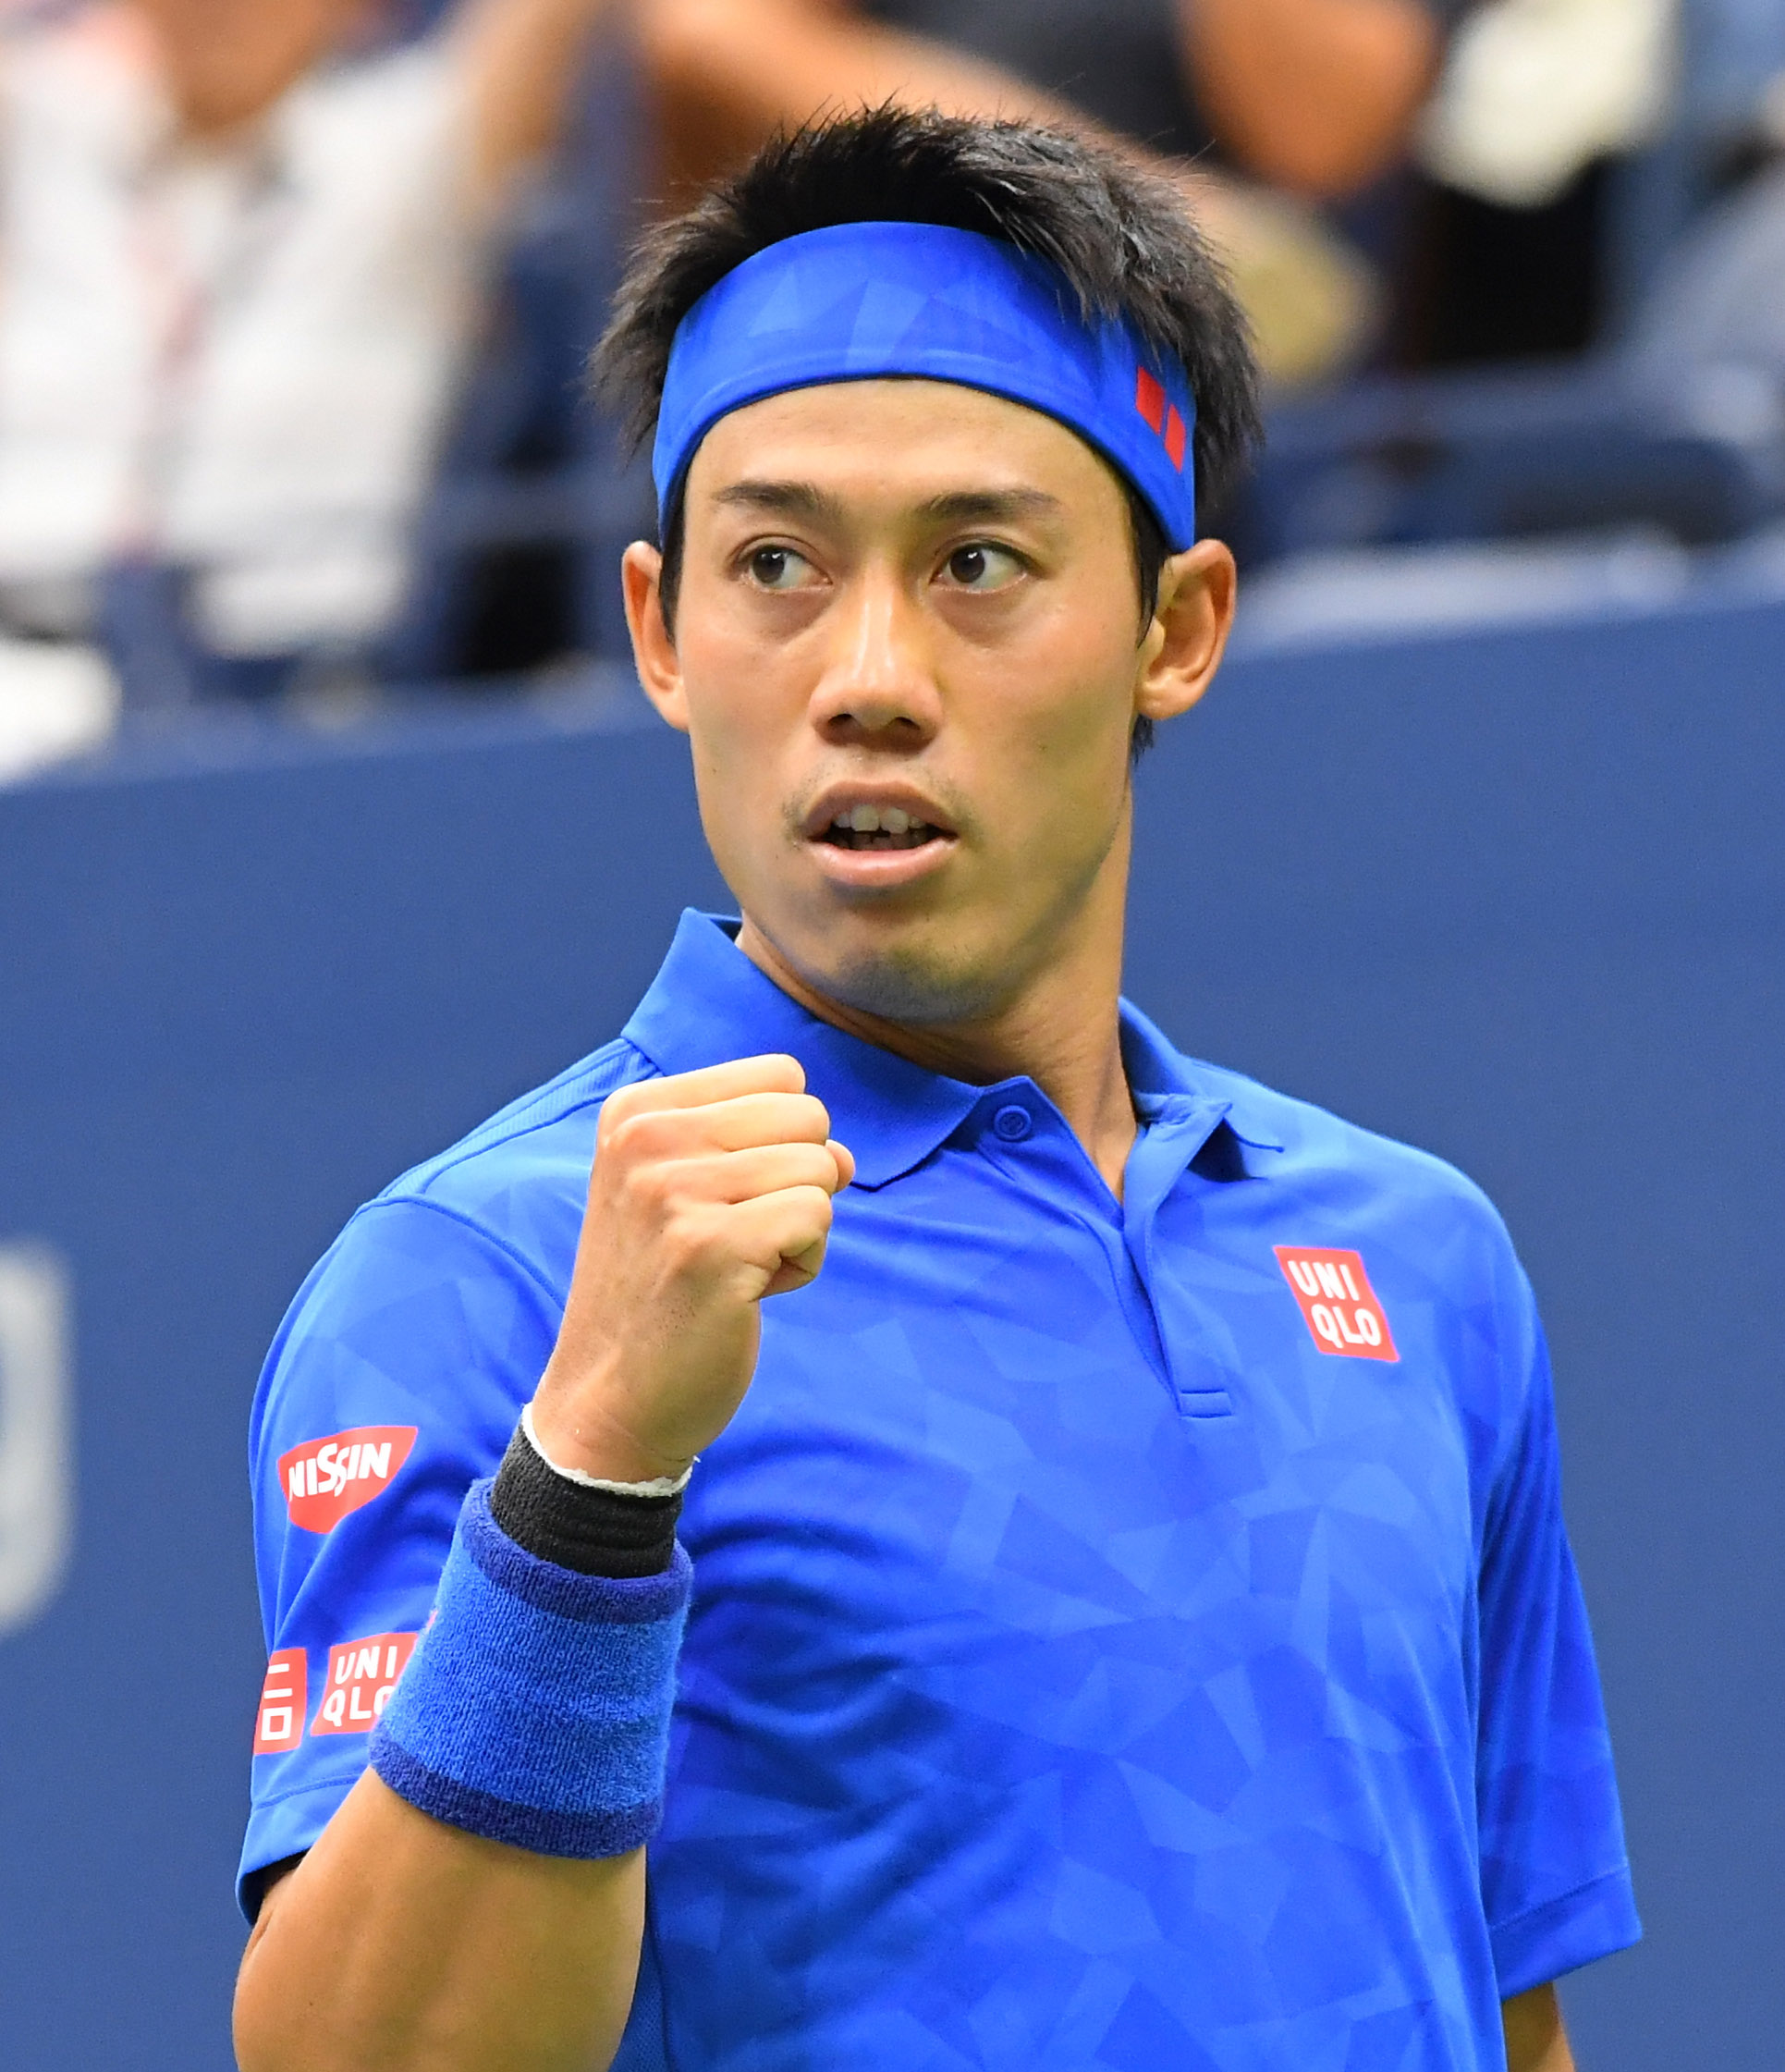 2016 US Open scores and bracket: Andy Murray loses to Kei Nishikori in quarterfinals